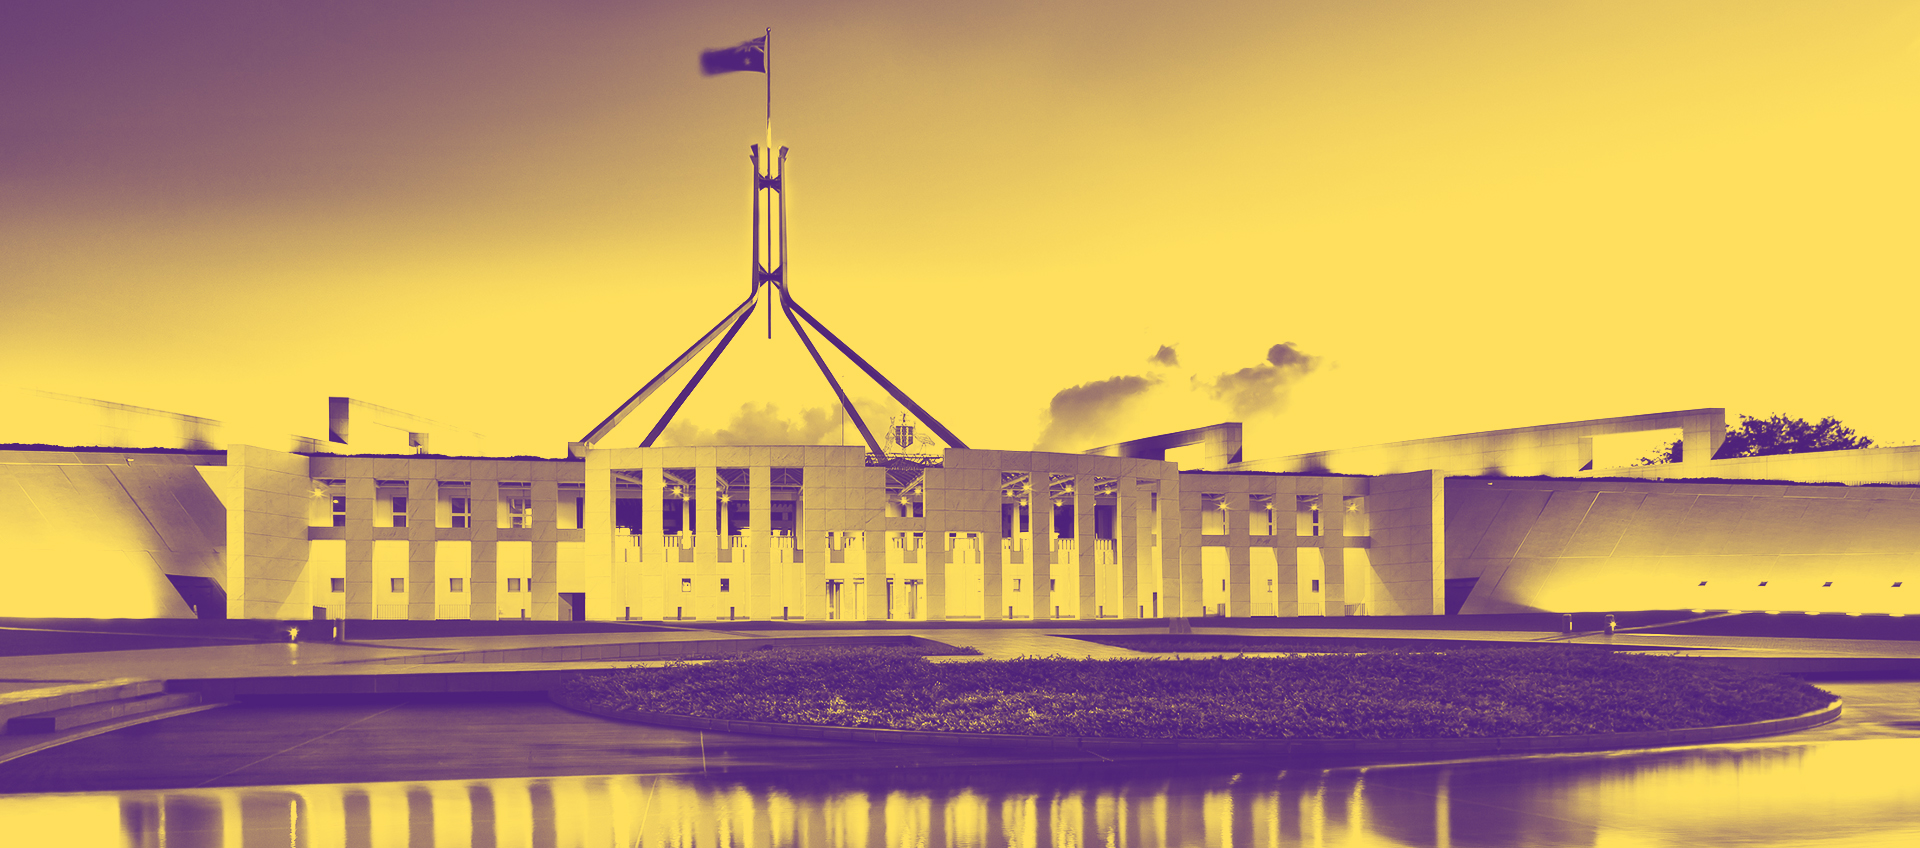 The GST deal could be the start of an improved relationship between WA and Canberra.